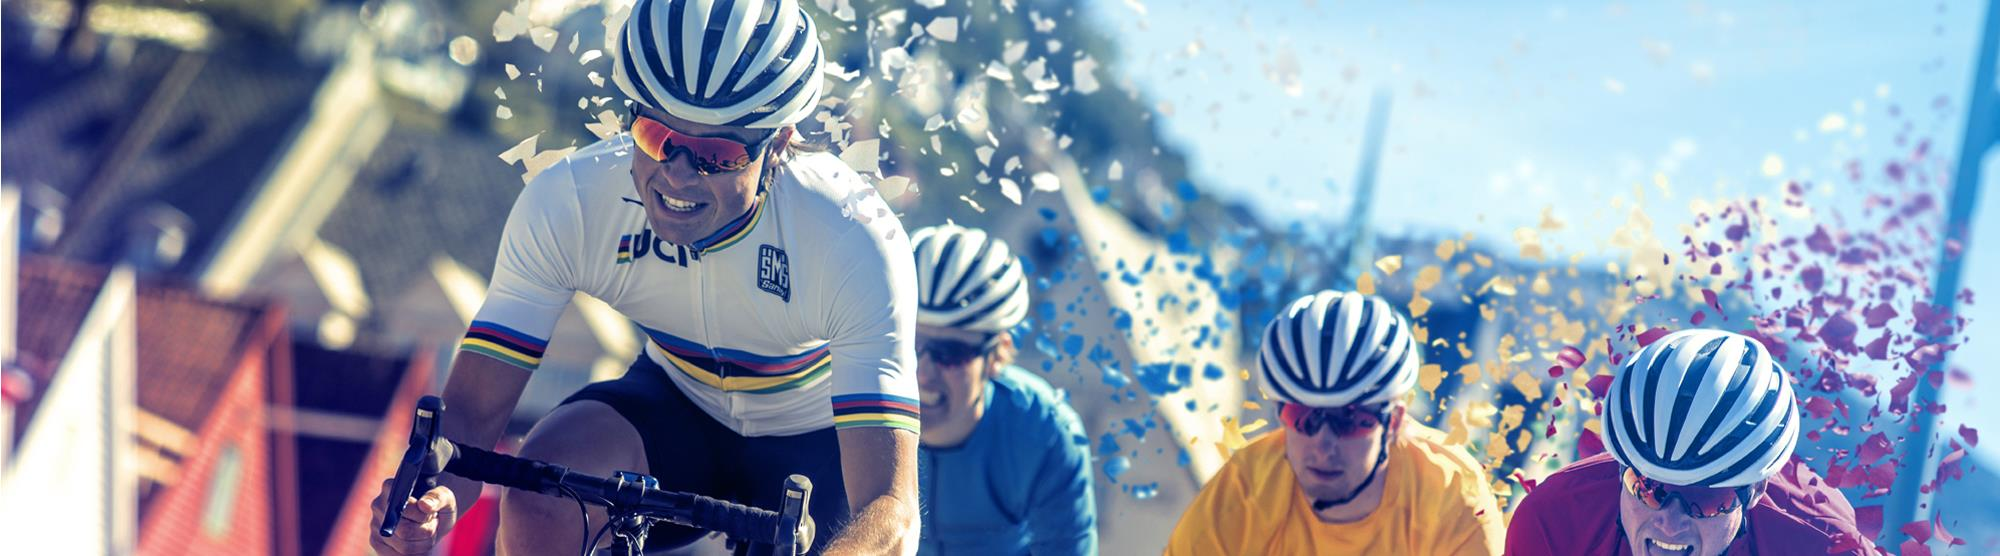 UCI Road World Championships in Bergen 16 - 24 September